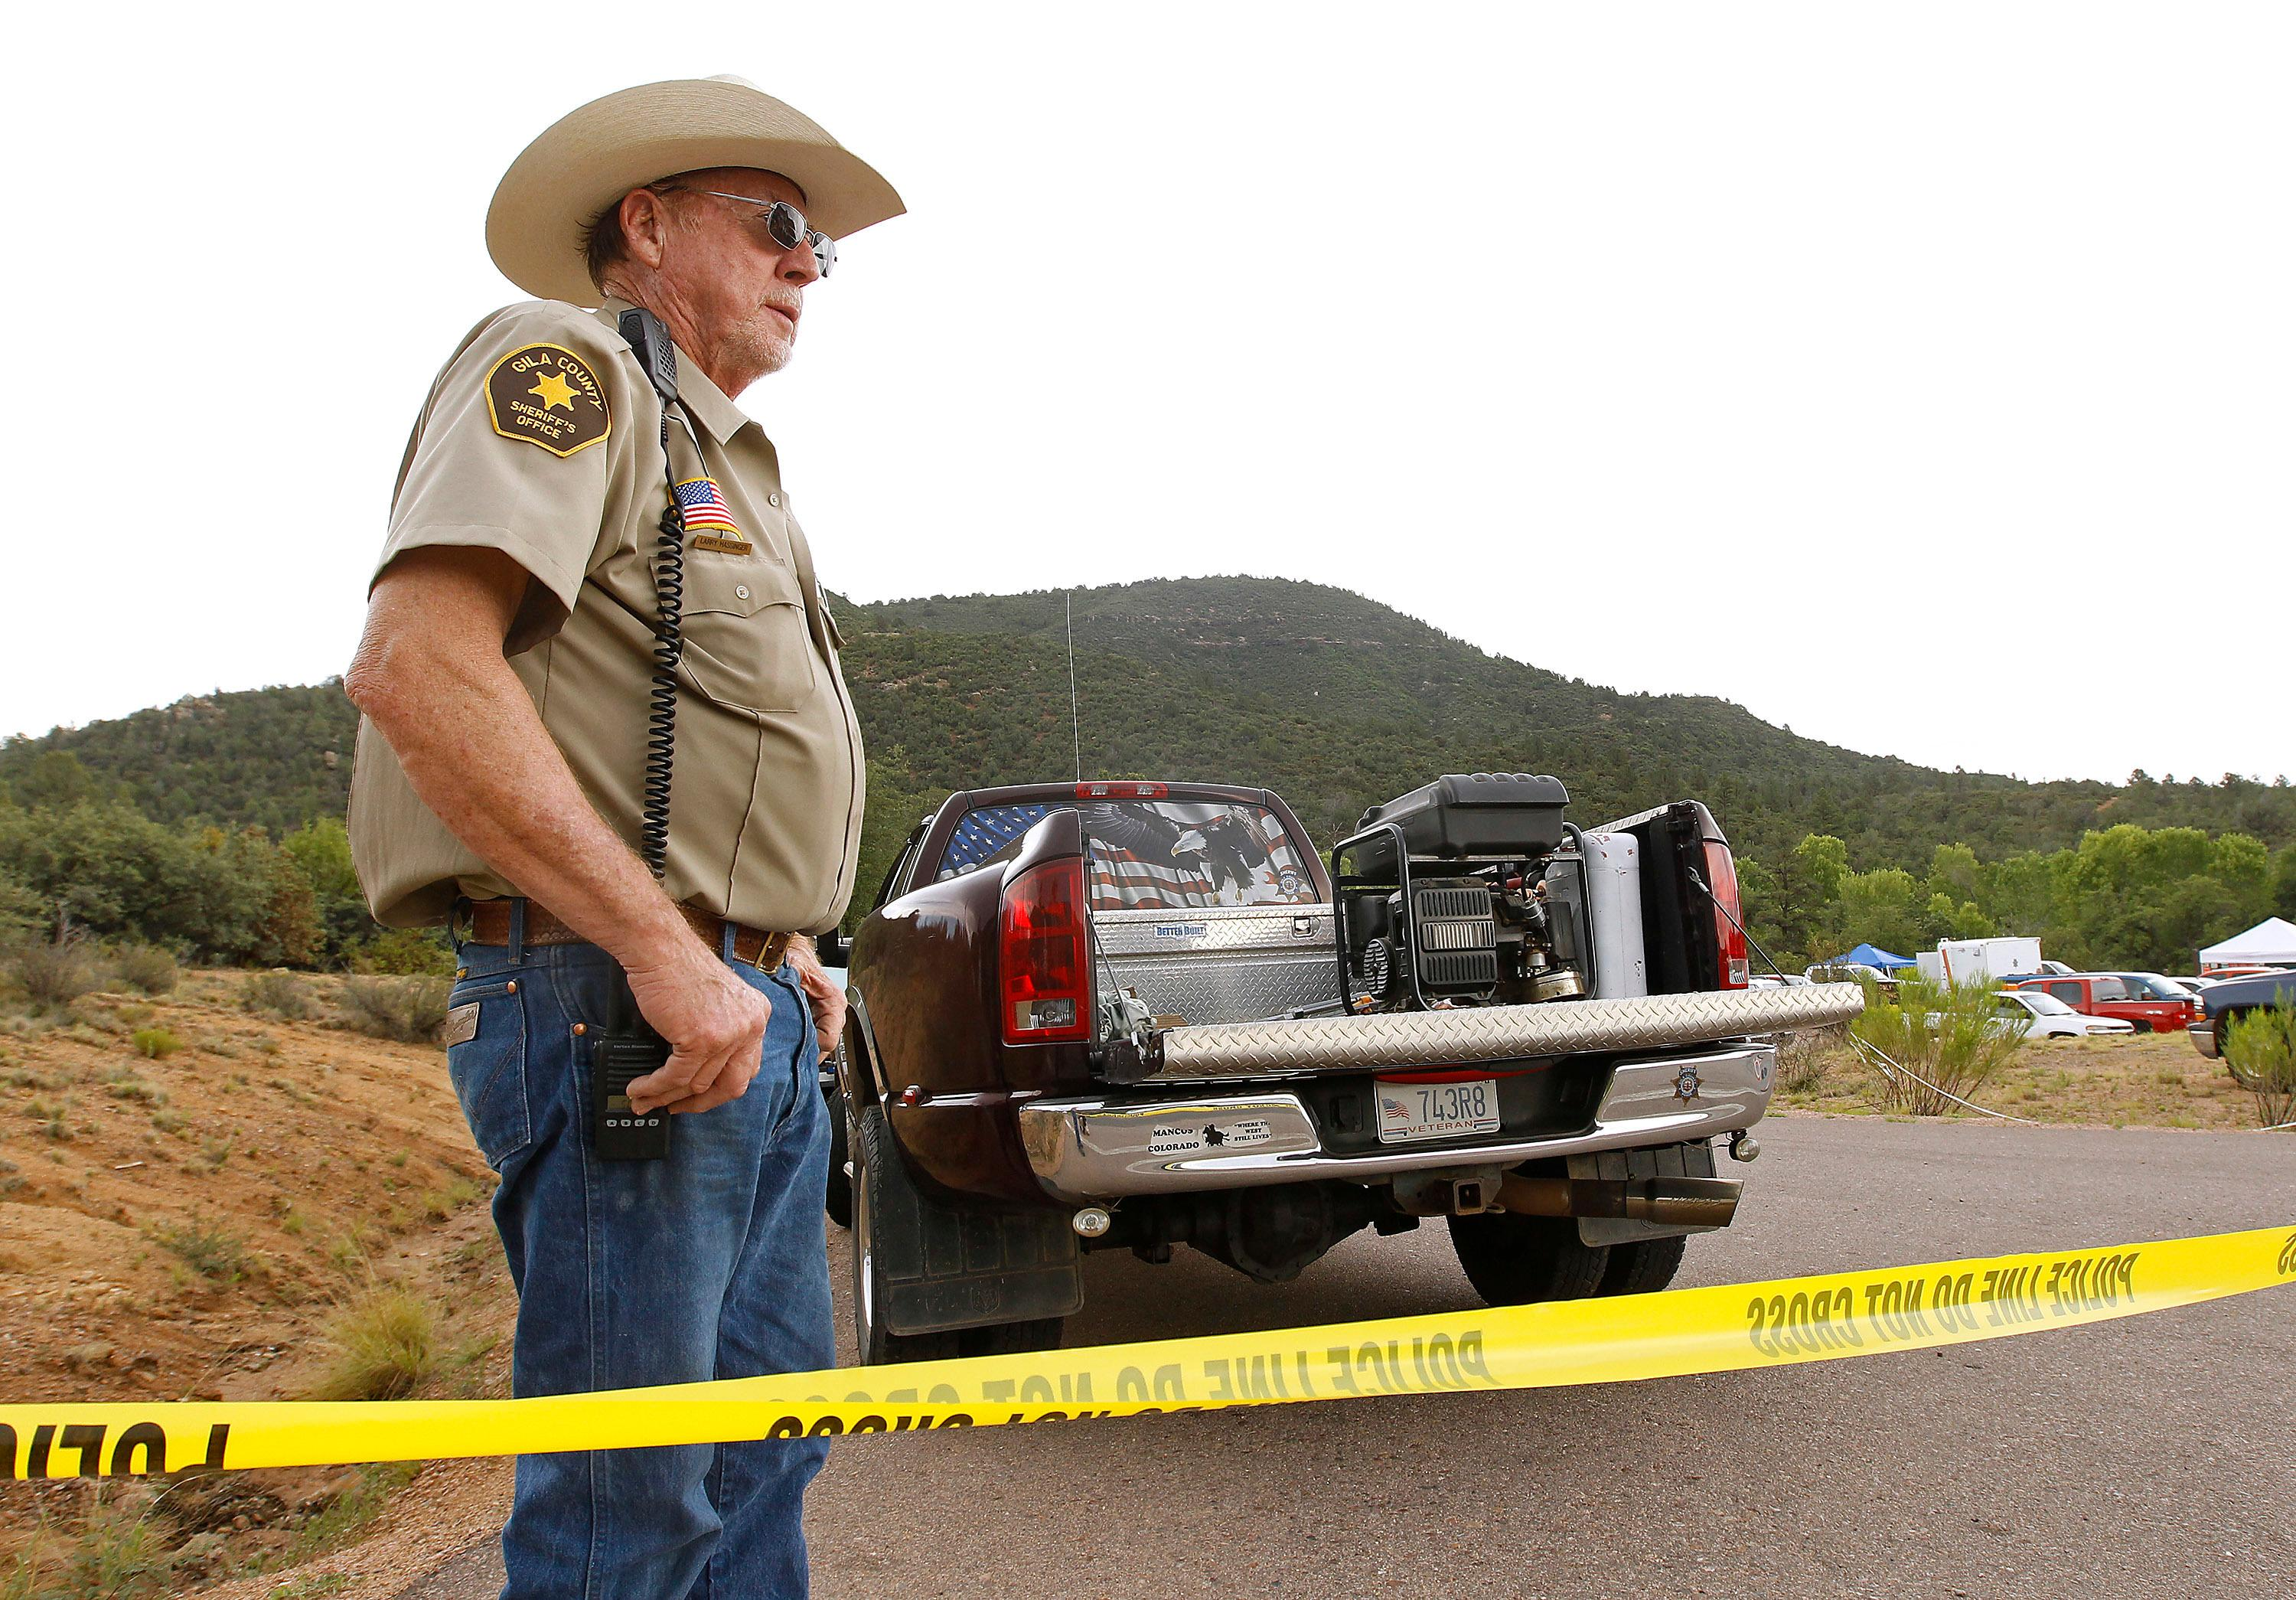 Gila County Sheriff's Office deputy Larry Hassinger stands watch at the entrance to the First Crossing recreation area during a search and rescue operation for victims of a flash flood along the banks of the East Verde River, Sunday, July 16, 2017, in Payson, Ariz. Search and rescue crews, including 40 people on foot and others in a helicopter, have recovered bodies of children and adults, some as far as two miles down the river after Saturday's flash flooding poured over a popular swimming area inside the Tonto National Forest in central Arizona. (AP Photo/Ralph Freso)